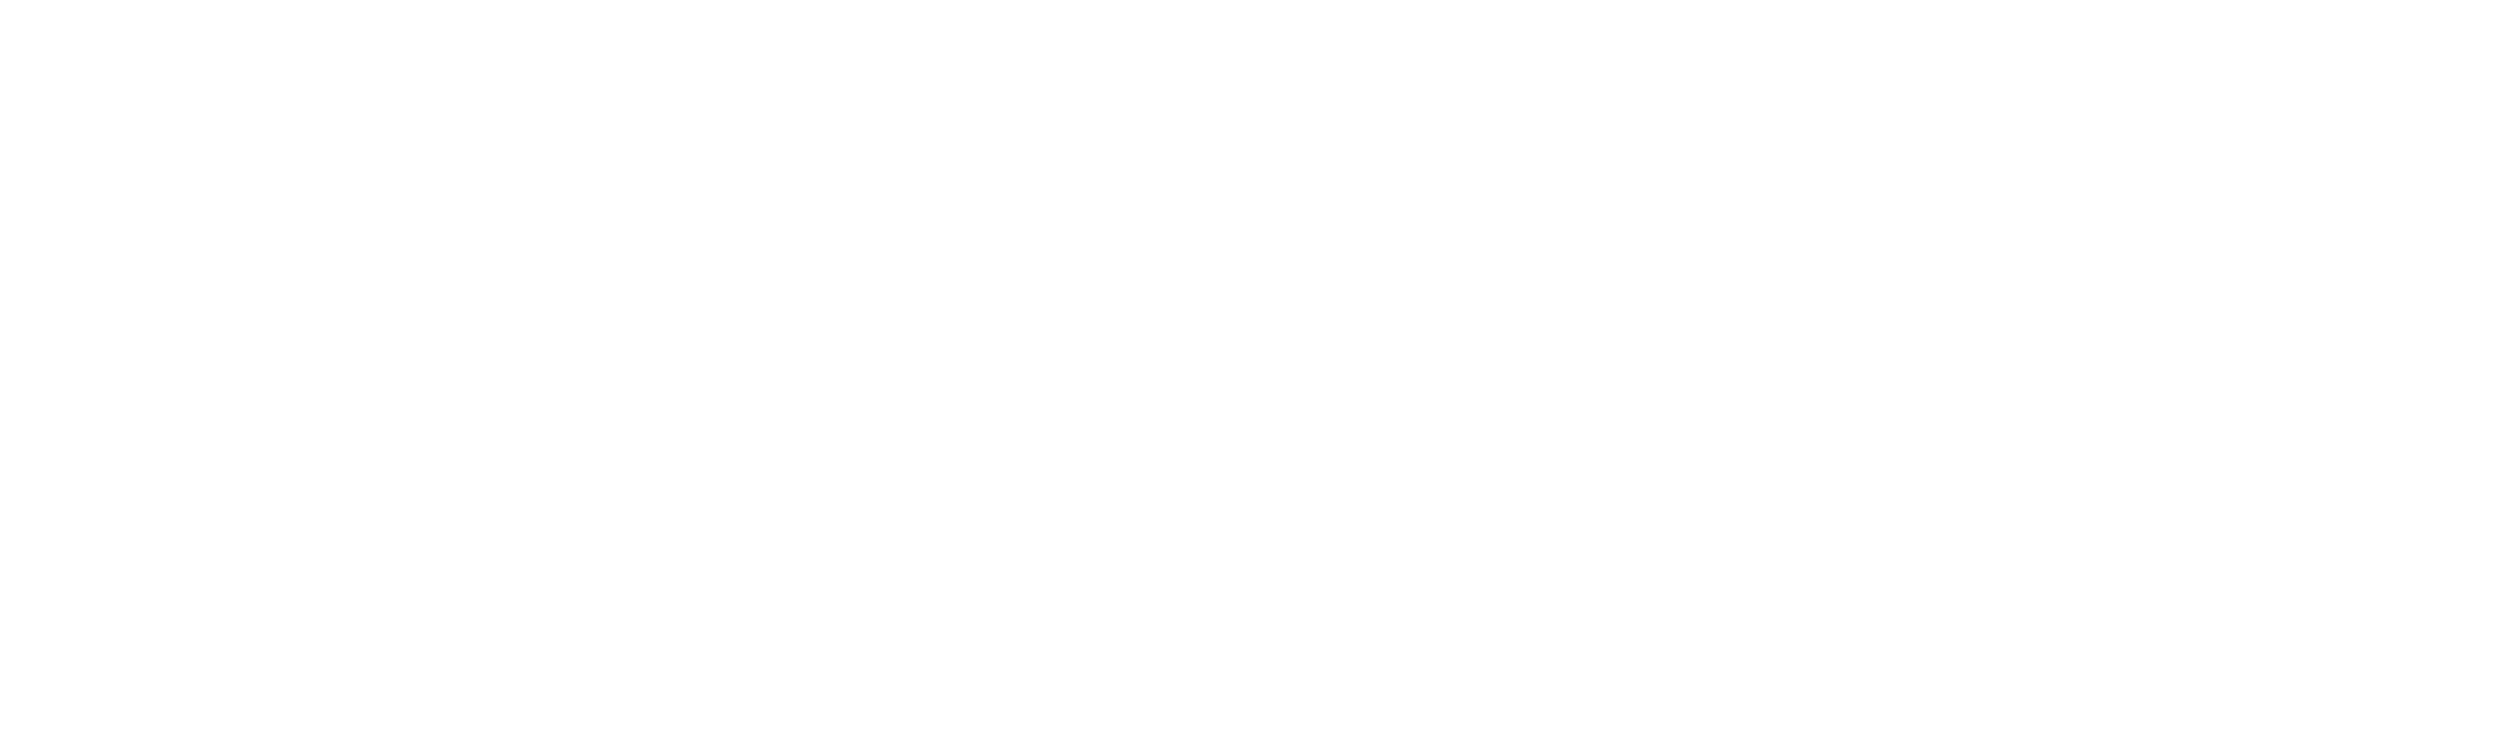 Gratefood Co.png